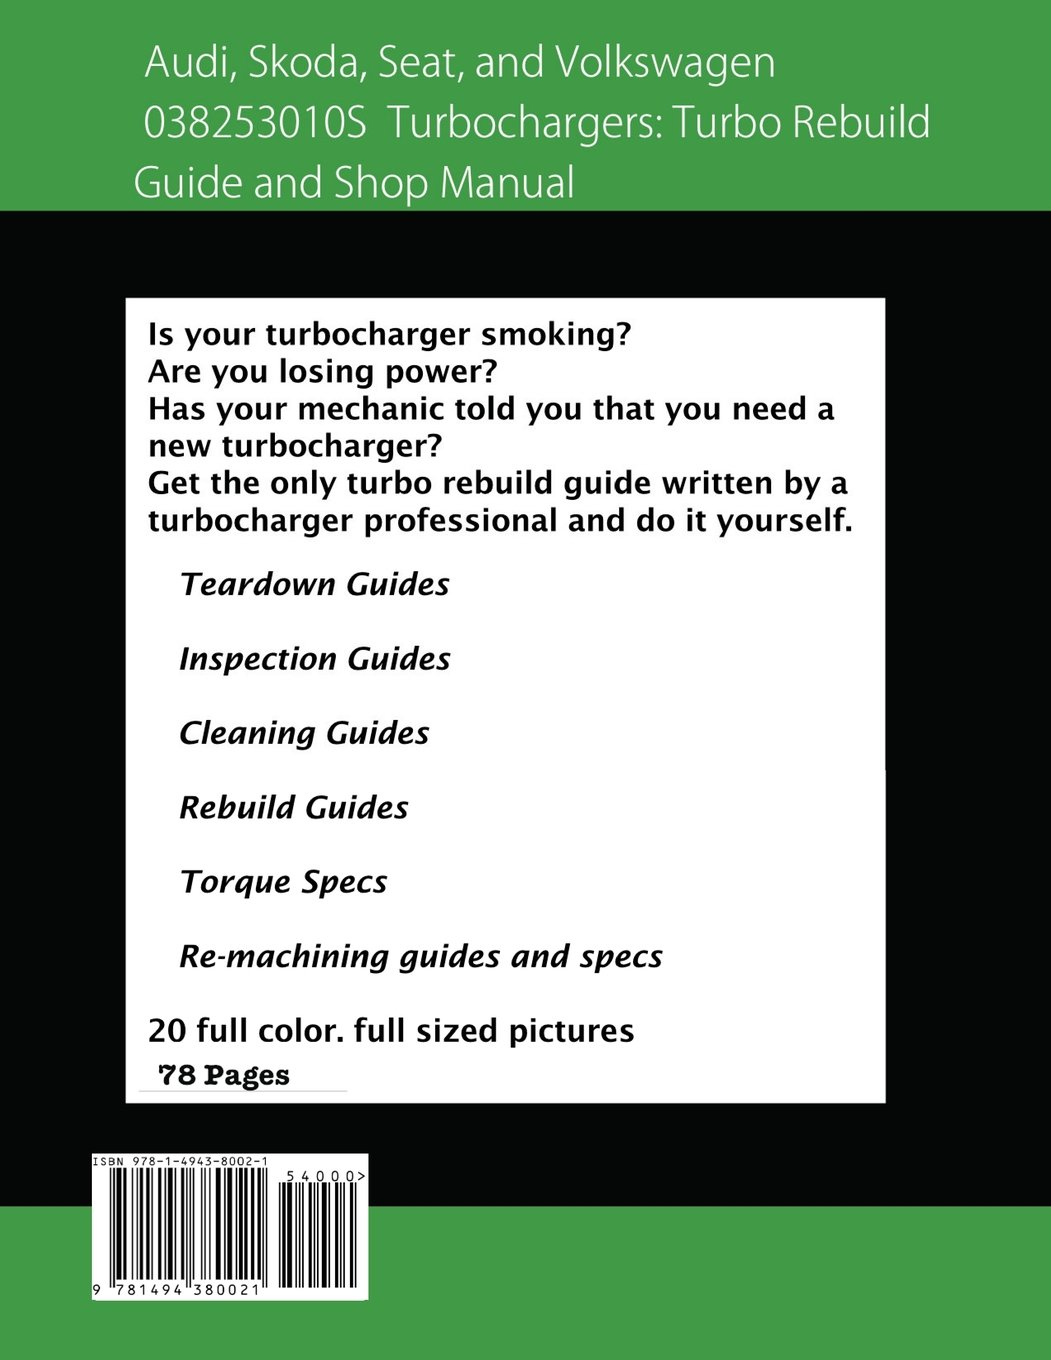 Audi, Skoda, Seat, and Volkswagen 038253010S Turbochargers: Turbo Rebuild Guide and Shop Manual: Amazon.es: Brian Smothers, Phaedra Smothers: Libros en ...